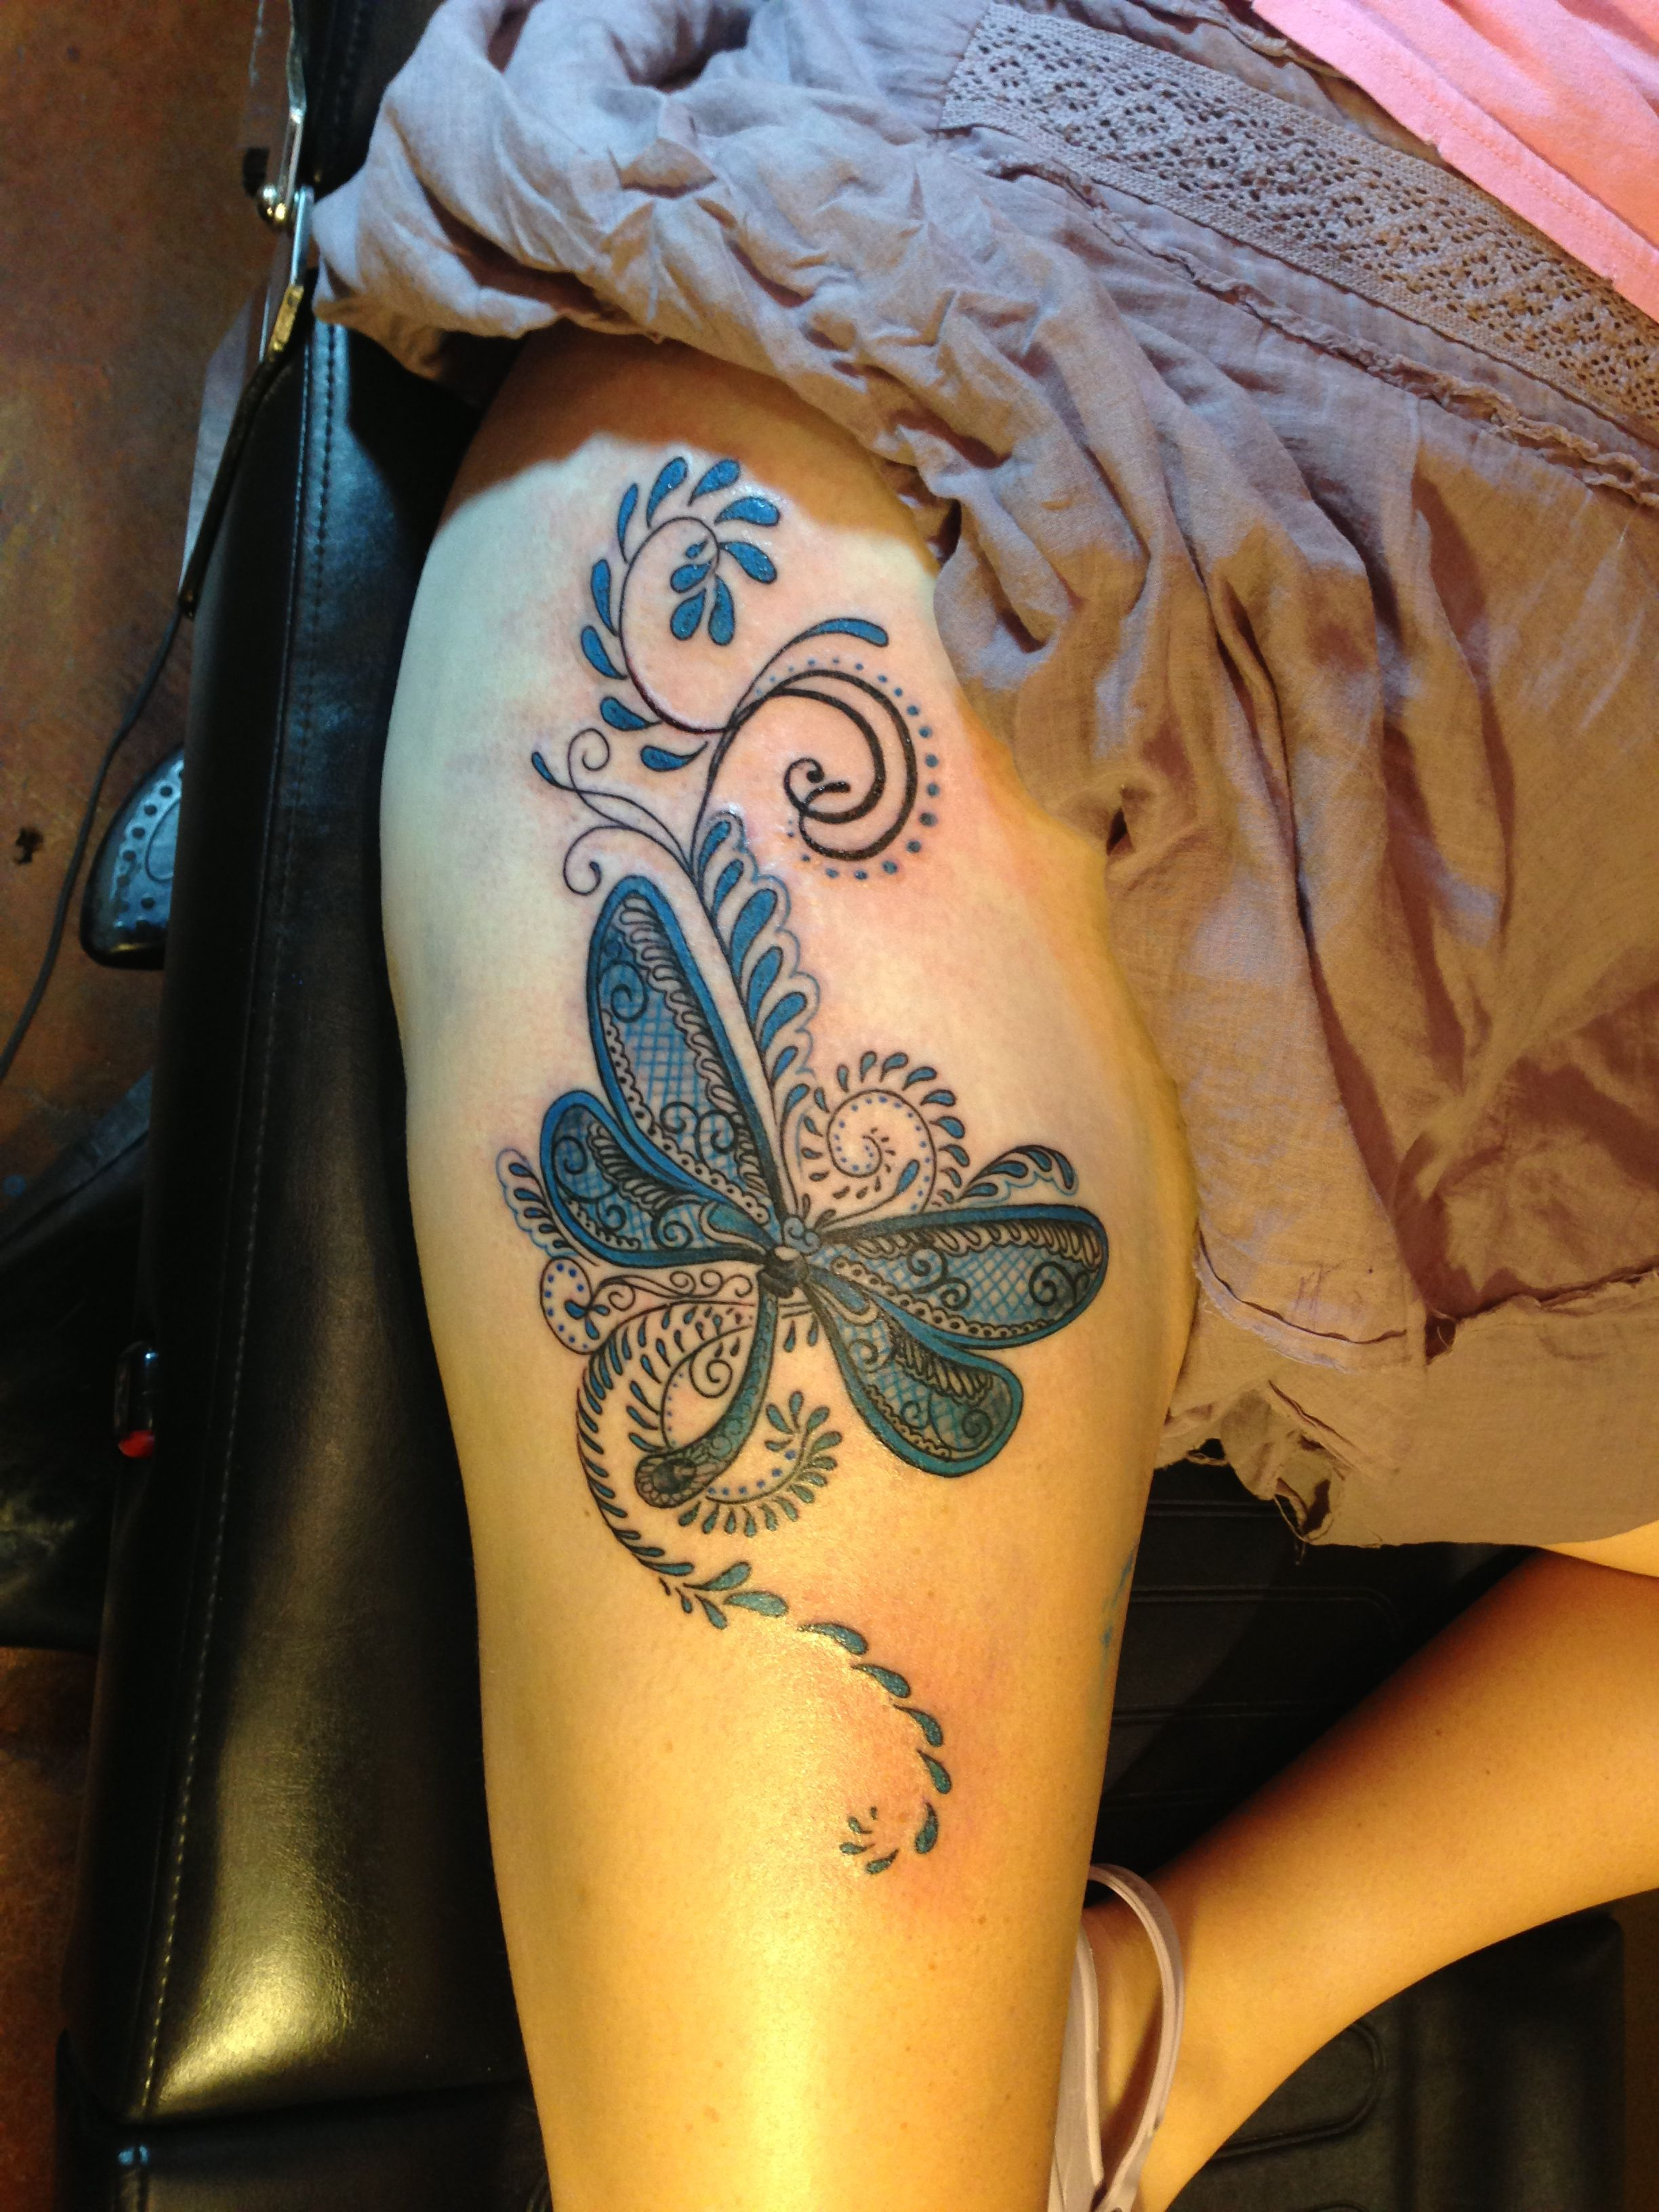 Dragonfly thigh tattoo by Cara Hanson Dragonfly tattoo